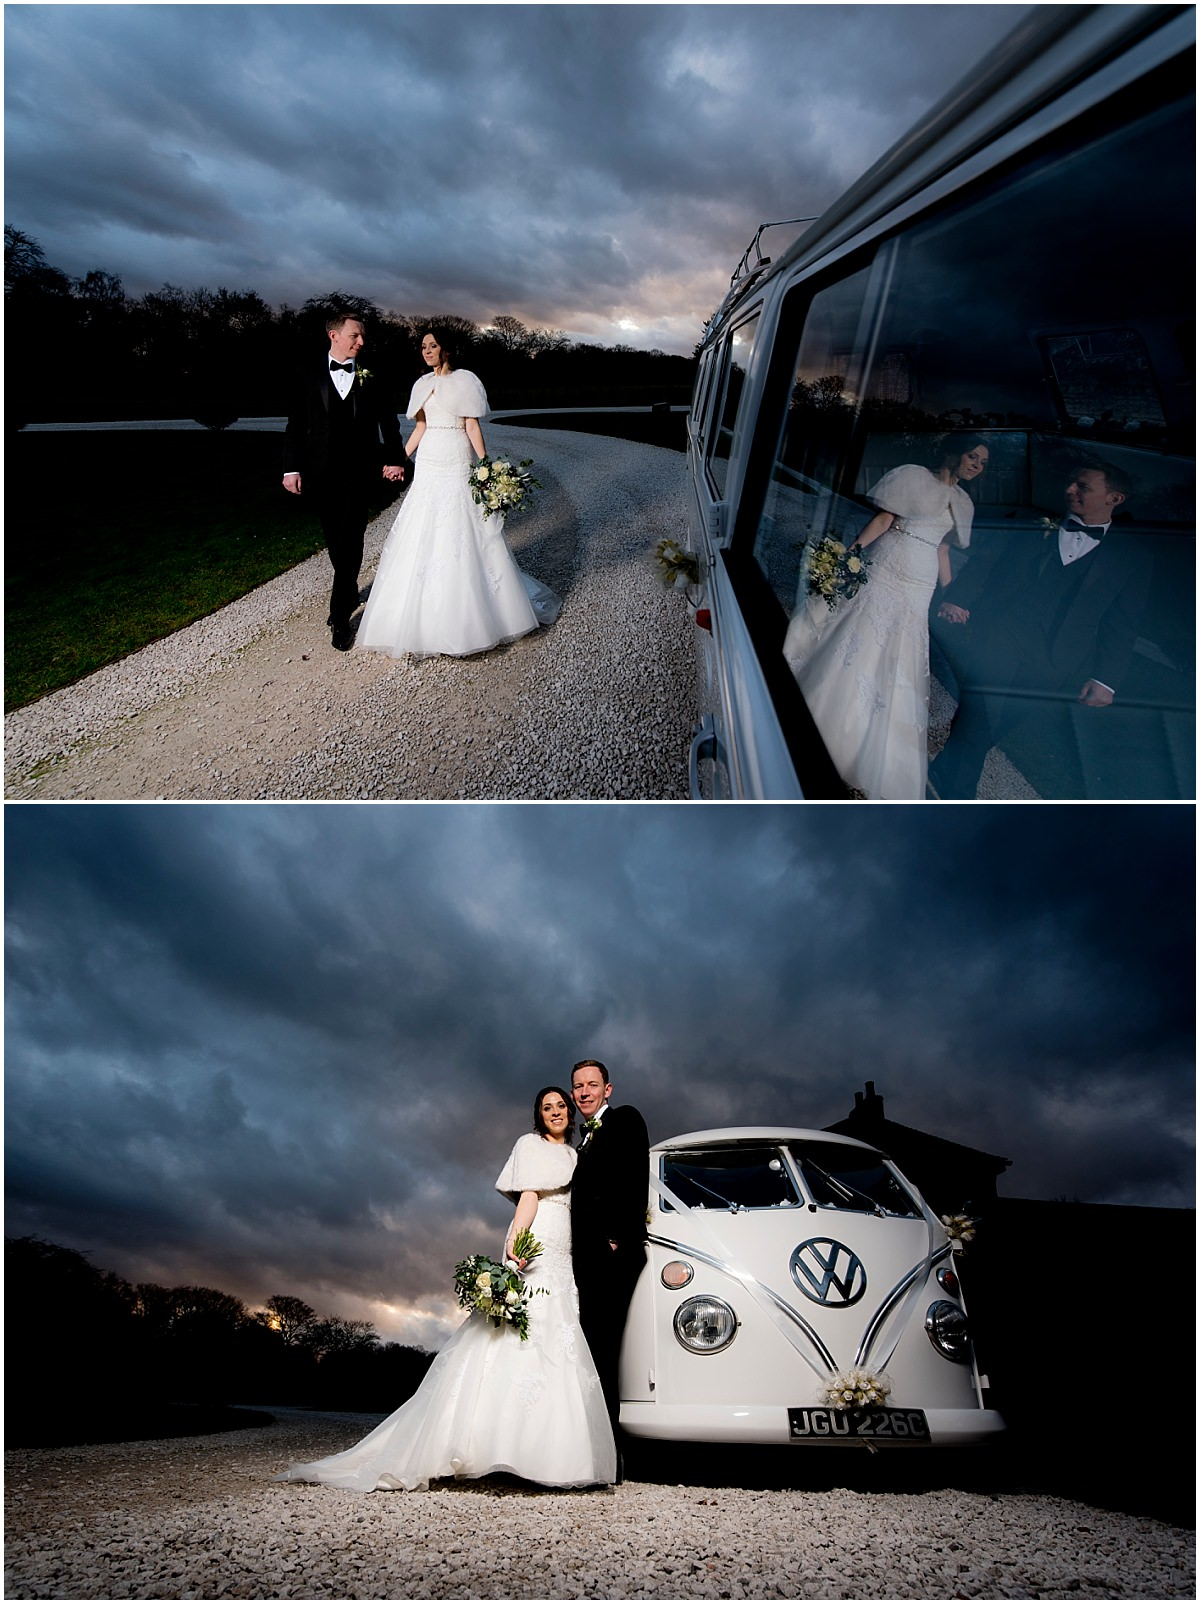 Winter Wedding at Hazel Gap Barn campervan